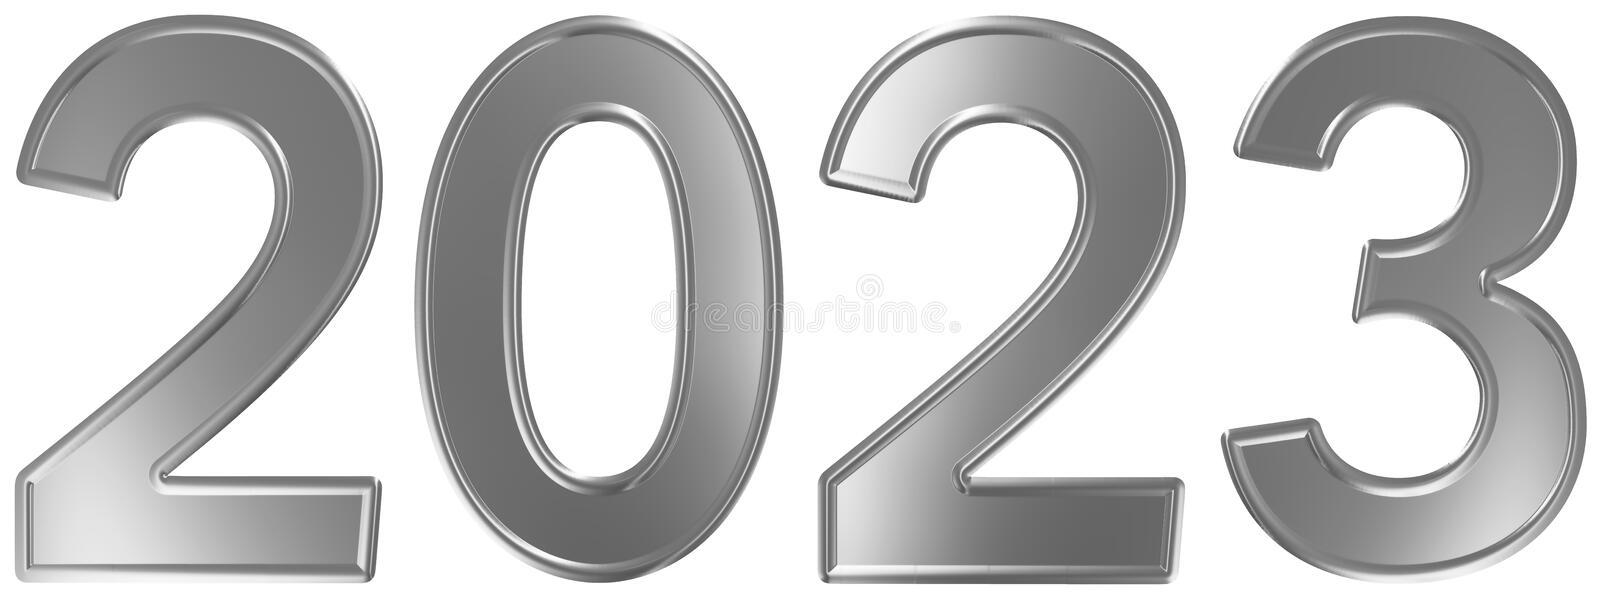 2023 inscription, isolated on white background, 3d render royalty free illustration